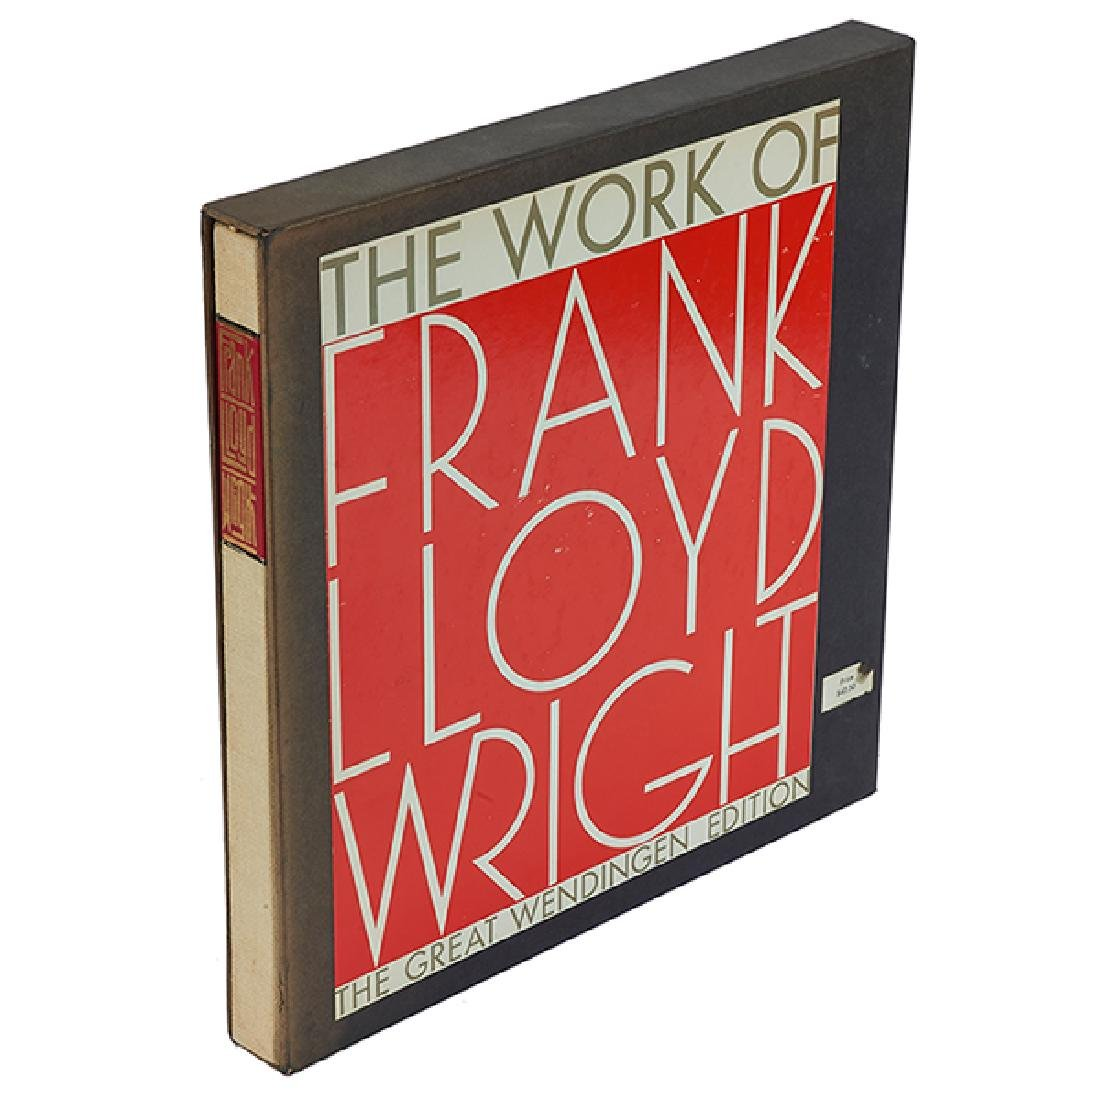 Frank Lloyd Wright, The Life Work of Frank Lloyd